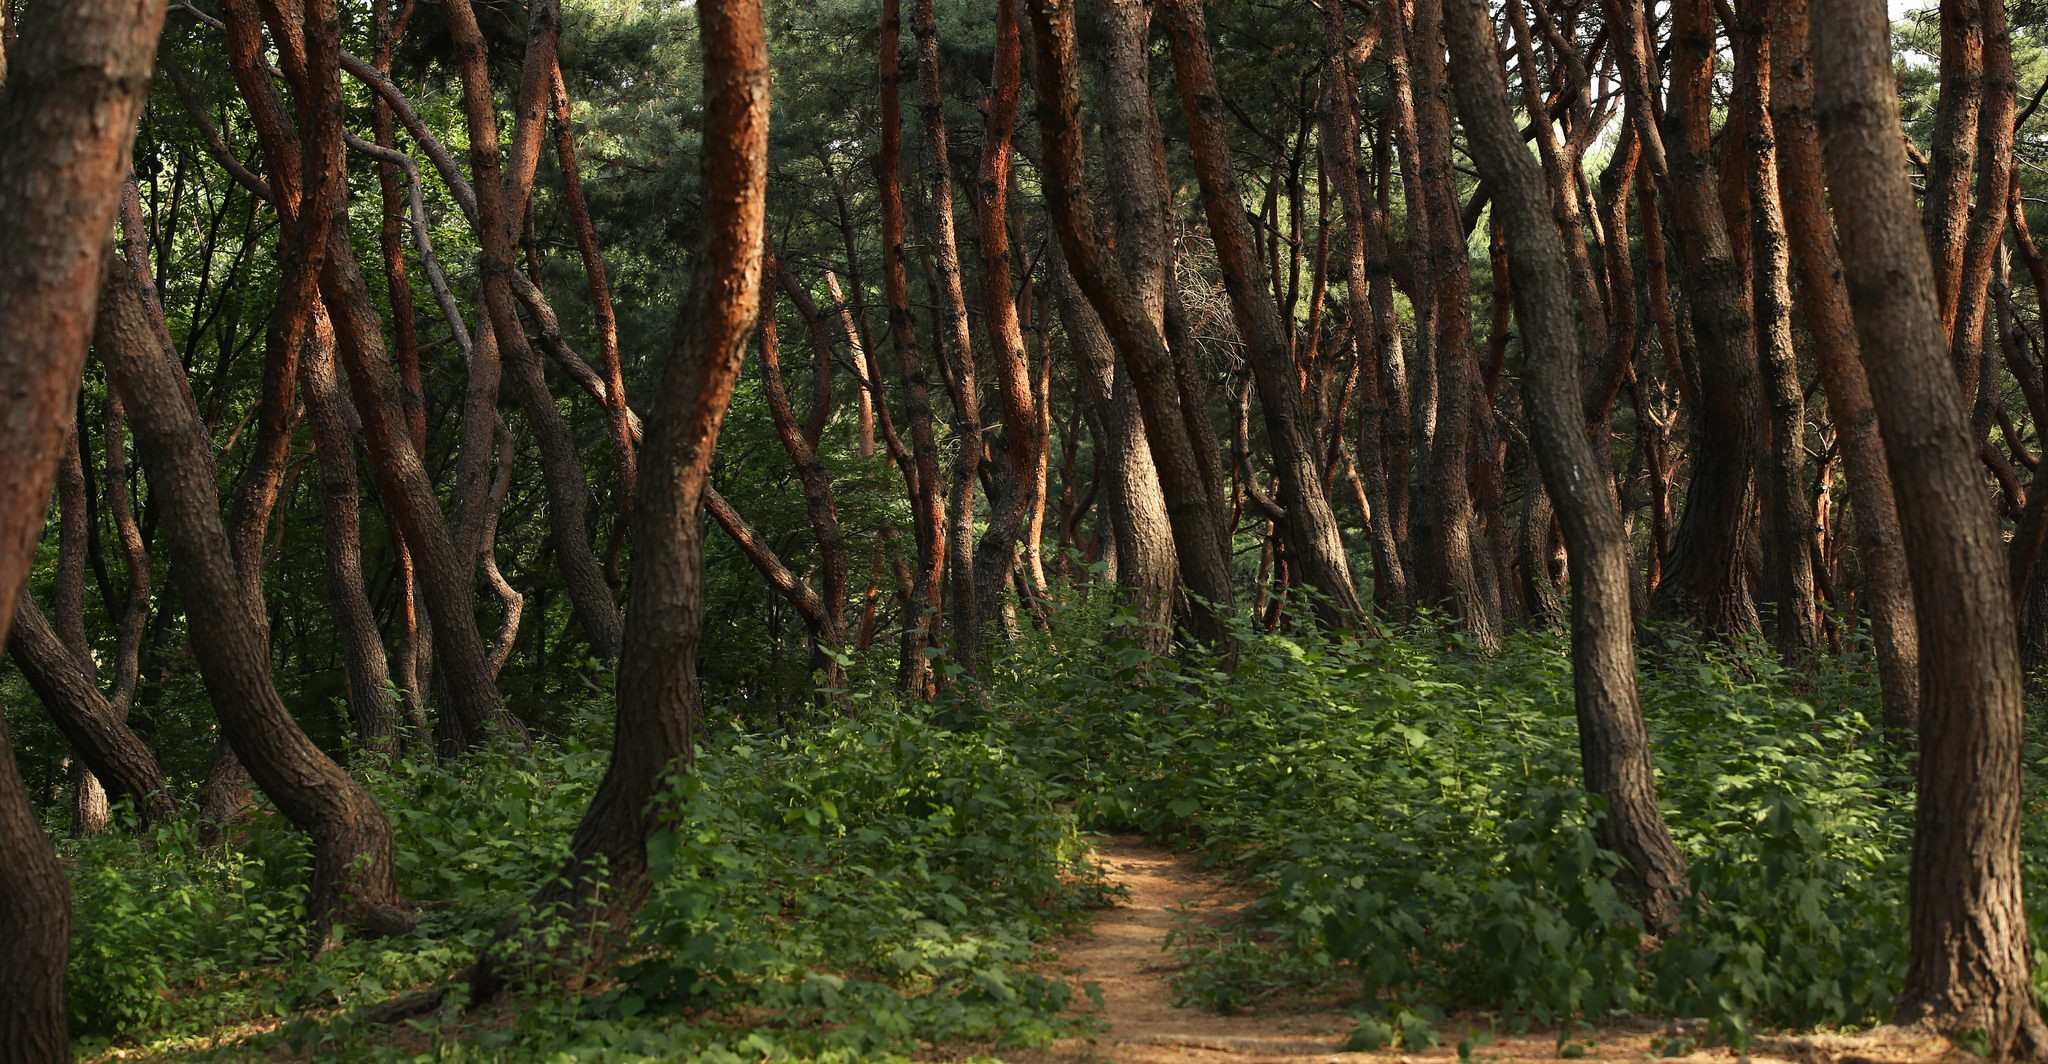 The forests of Seolleung-Jeongneung in Seoul | © KoreaNet / Flickr